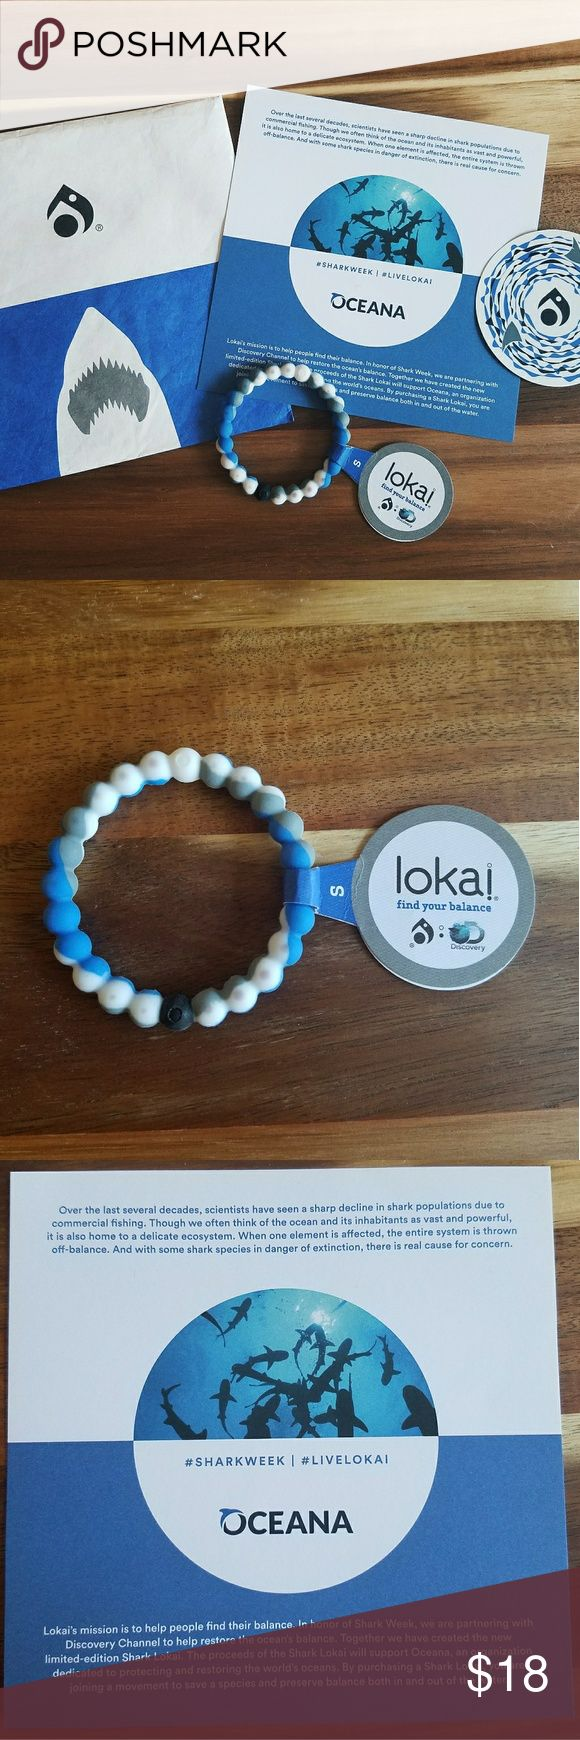 Live Lokai Bracelet--Shark Week Edition🦈 •Brand new | bought but was too small for me •Size small •Limited Edition no longer sold on the Lokai website •help support the balance of the ocean •proceeds help benefit Oceanas fight against shark finning  •help save a species 🦈🦈🦈 Lokai Jewelry Bracelets